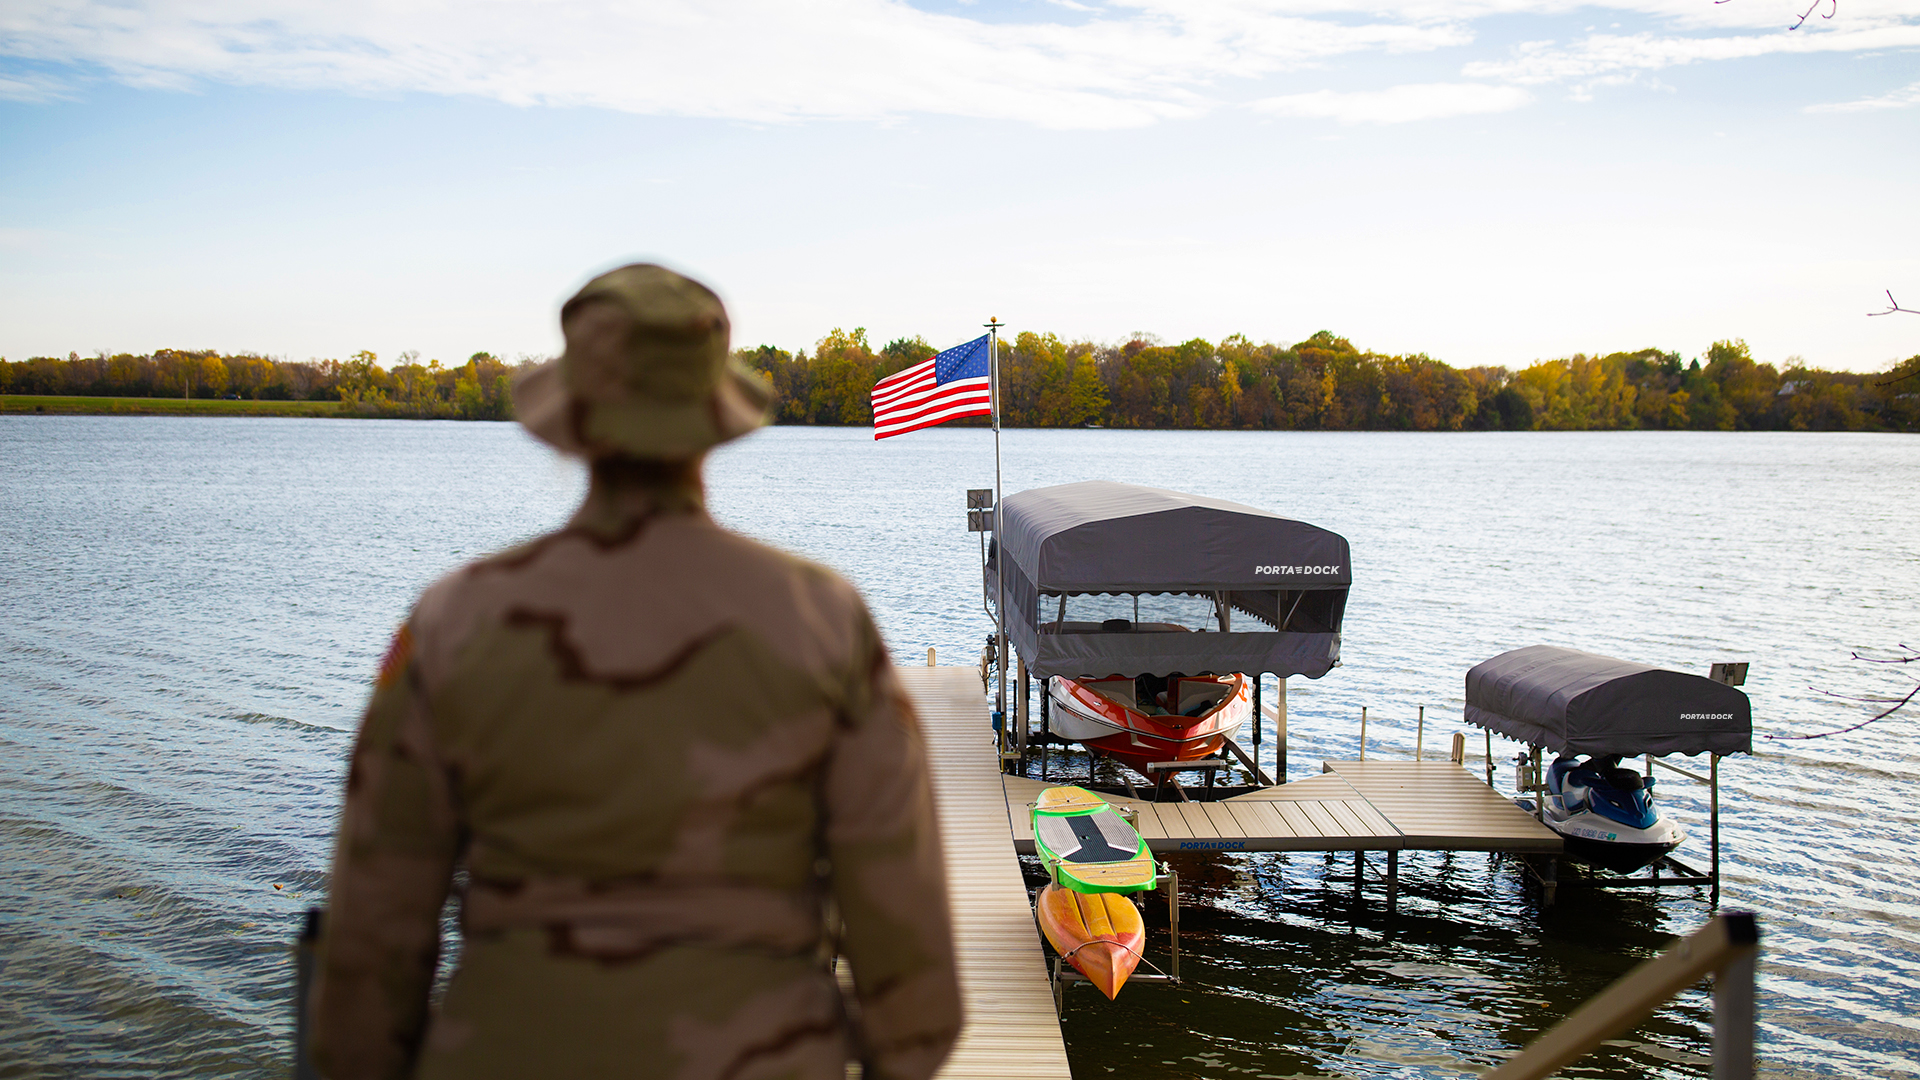 Military member and American flag on a Porta-Dock post dock